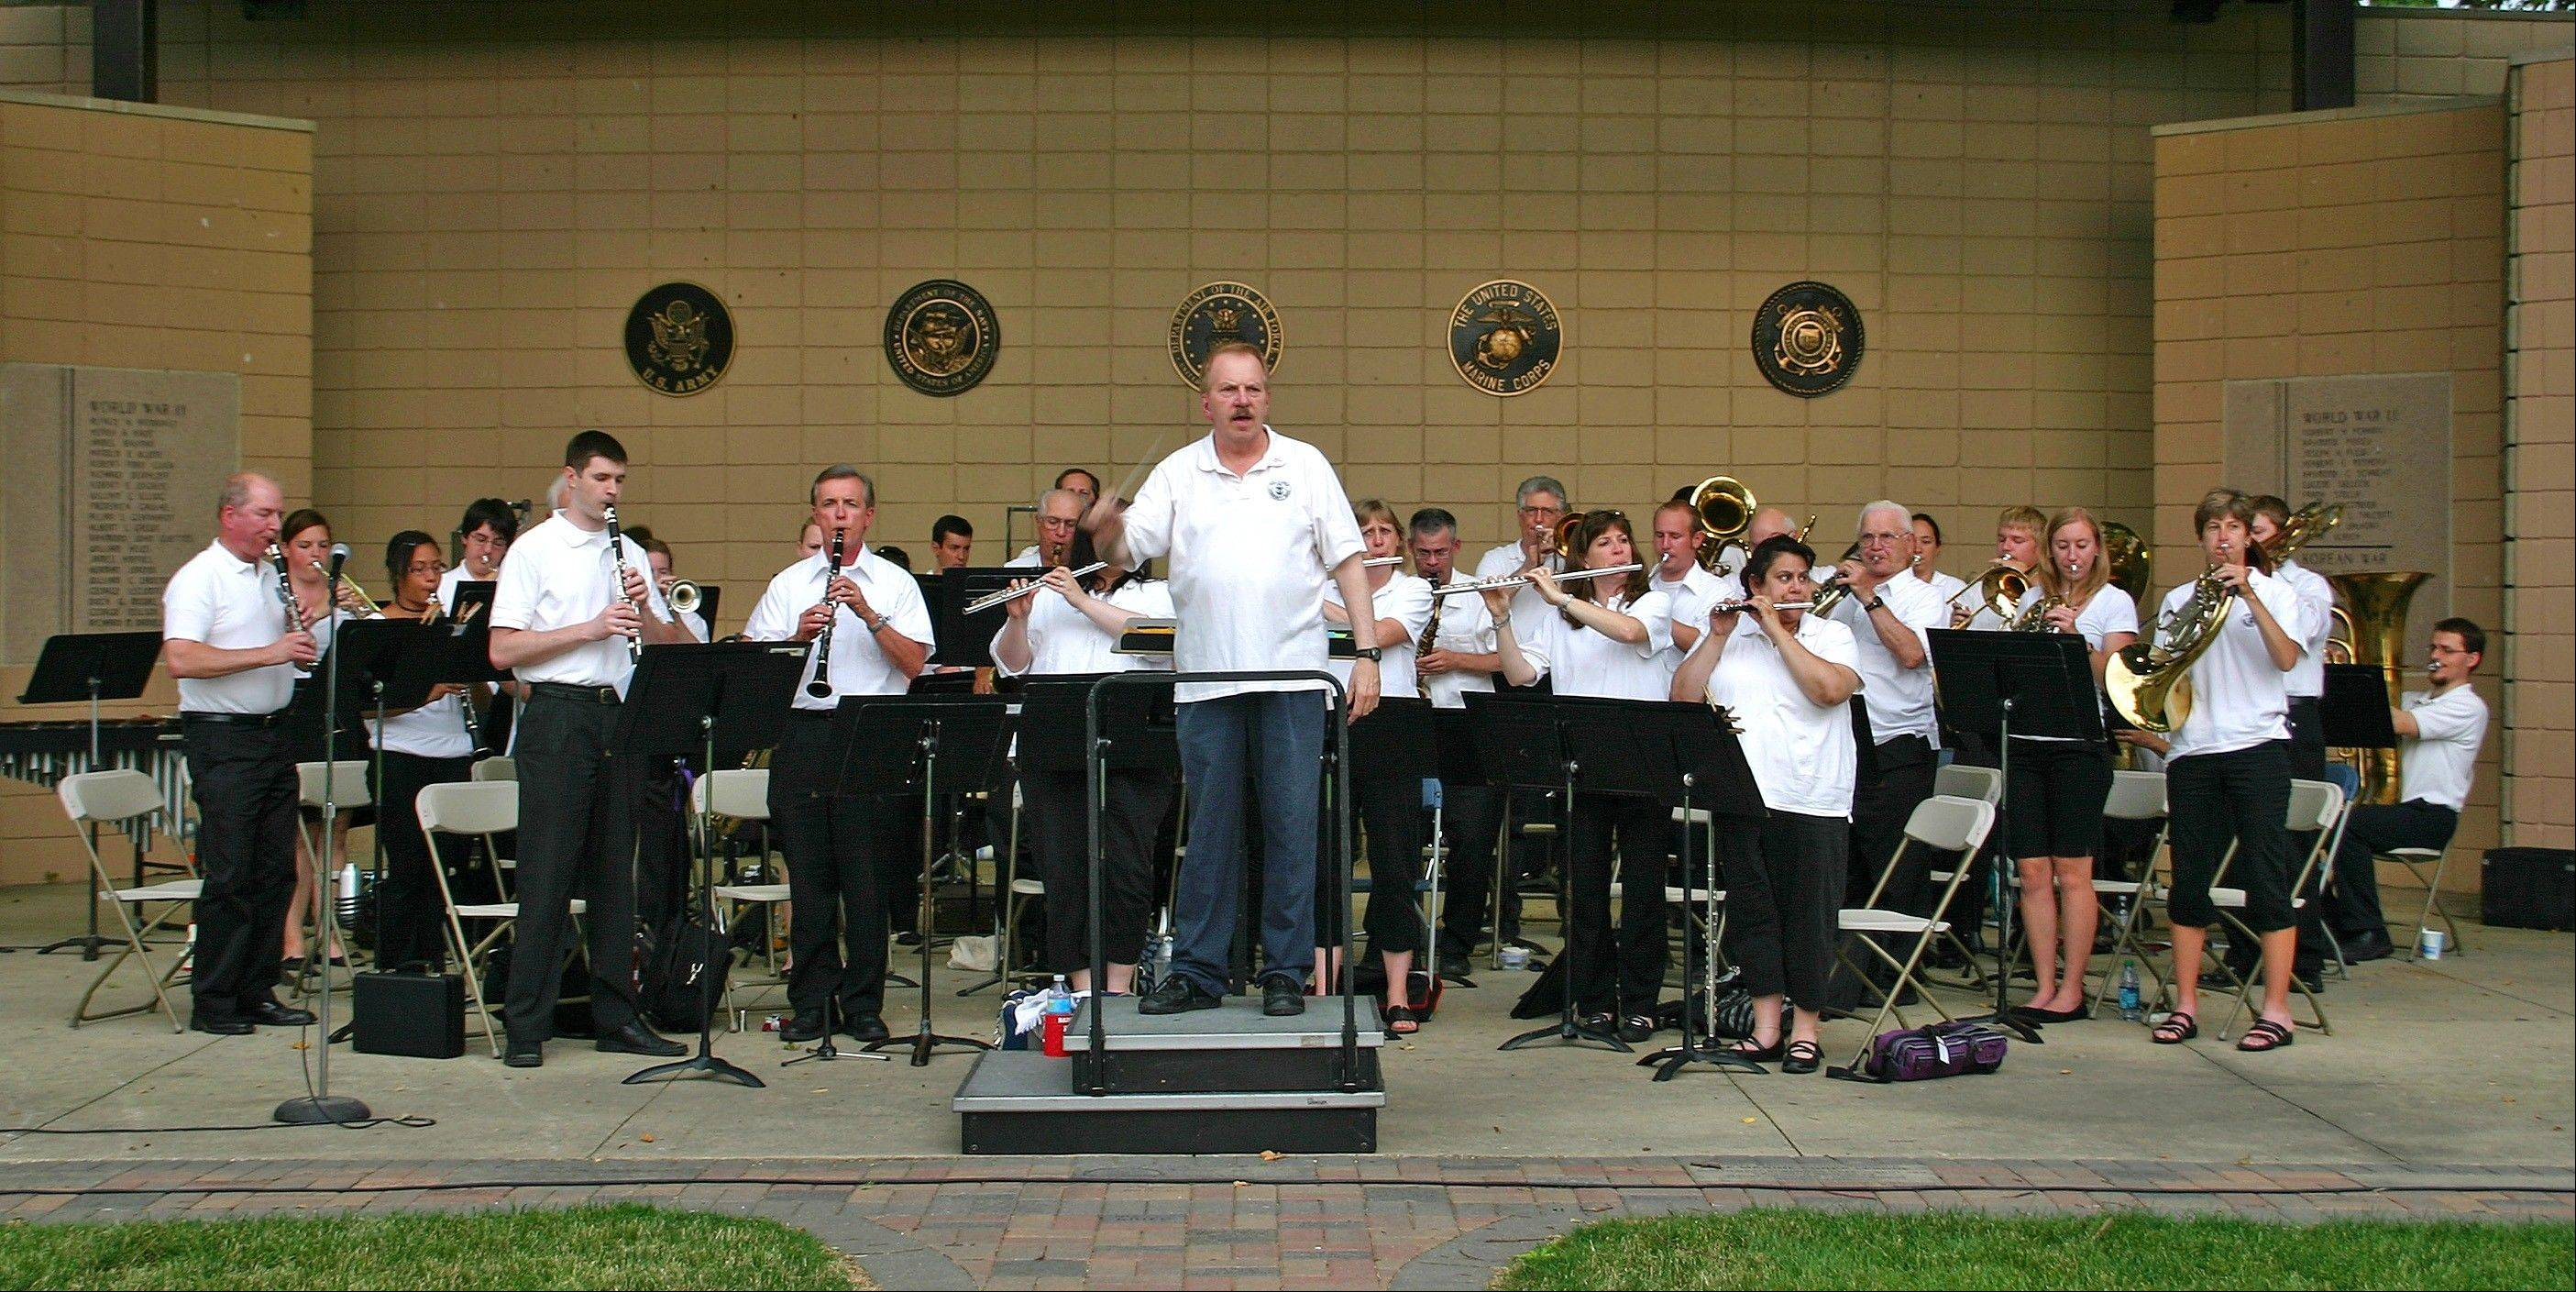 The Des Plaines Park District Community Concert Band, under the direction of Larry J. Carle, performs �The Star-Spangled Banner� June 30 at Lake Park.